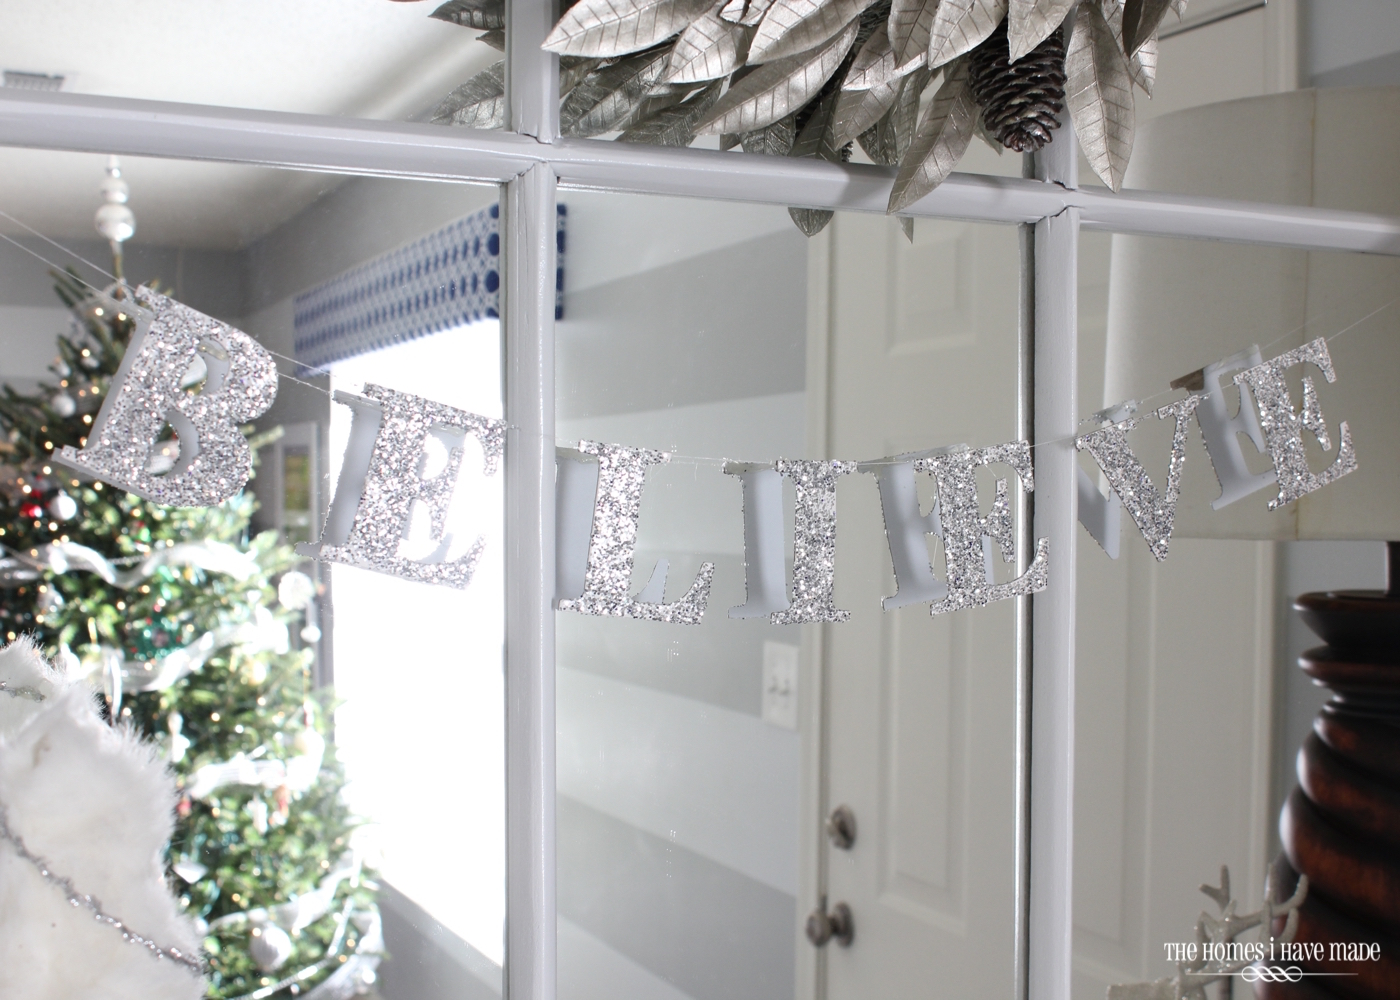 Holiday Home Tour 2014-003